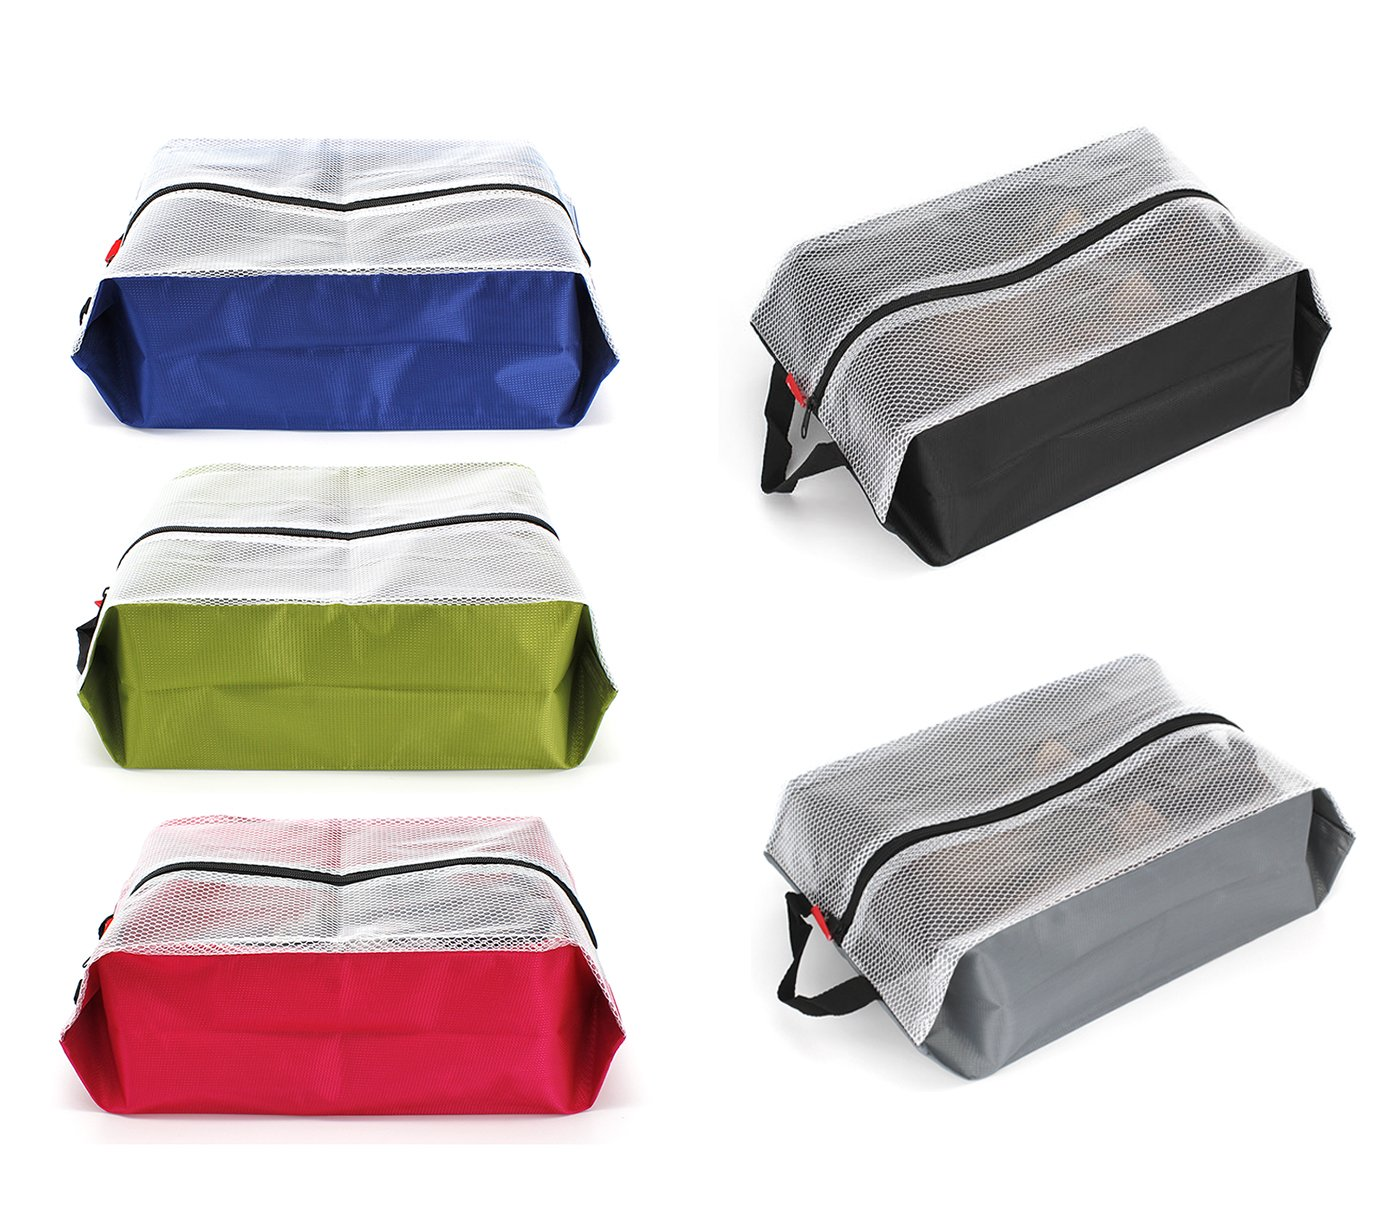 Travel Shoe Bags Waterproof Nylon for Women & Men,Shoe Tote bags for Sport Gym,5 PCS (Multicoloured)